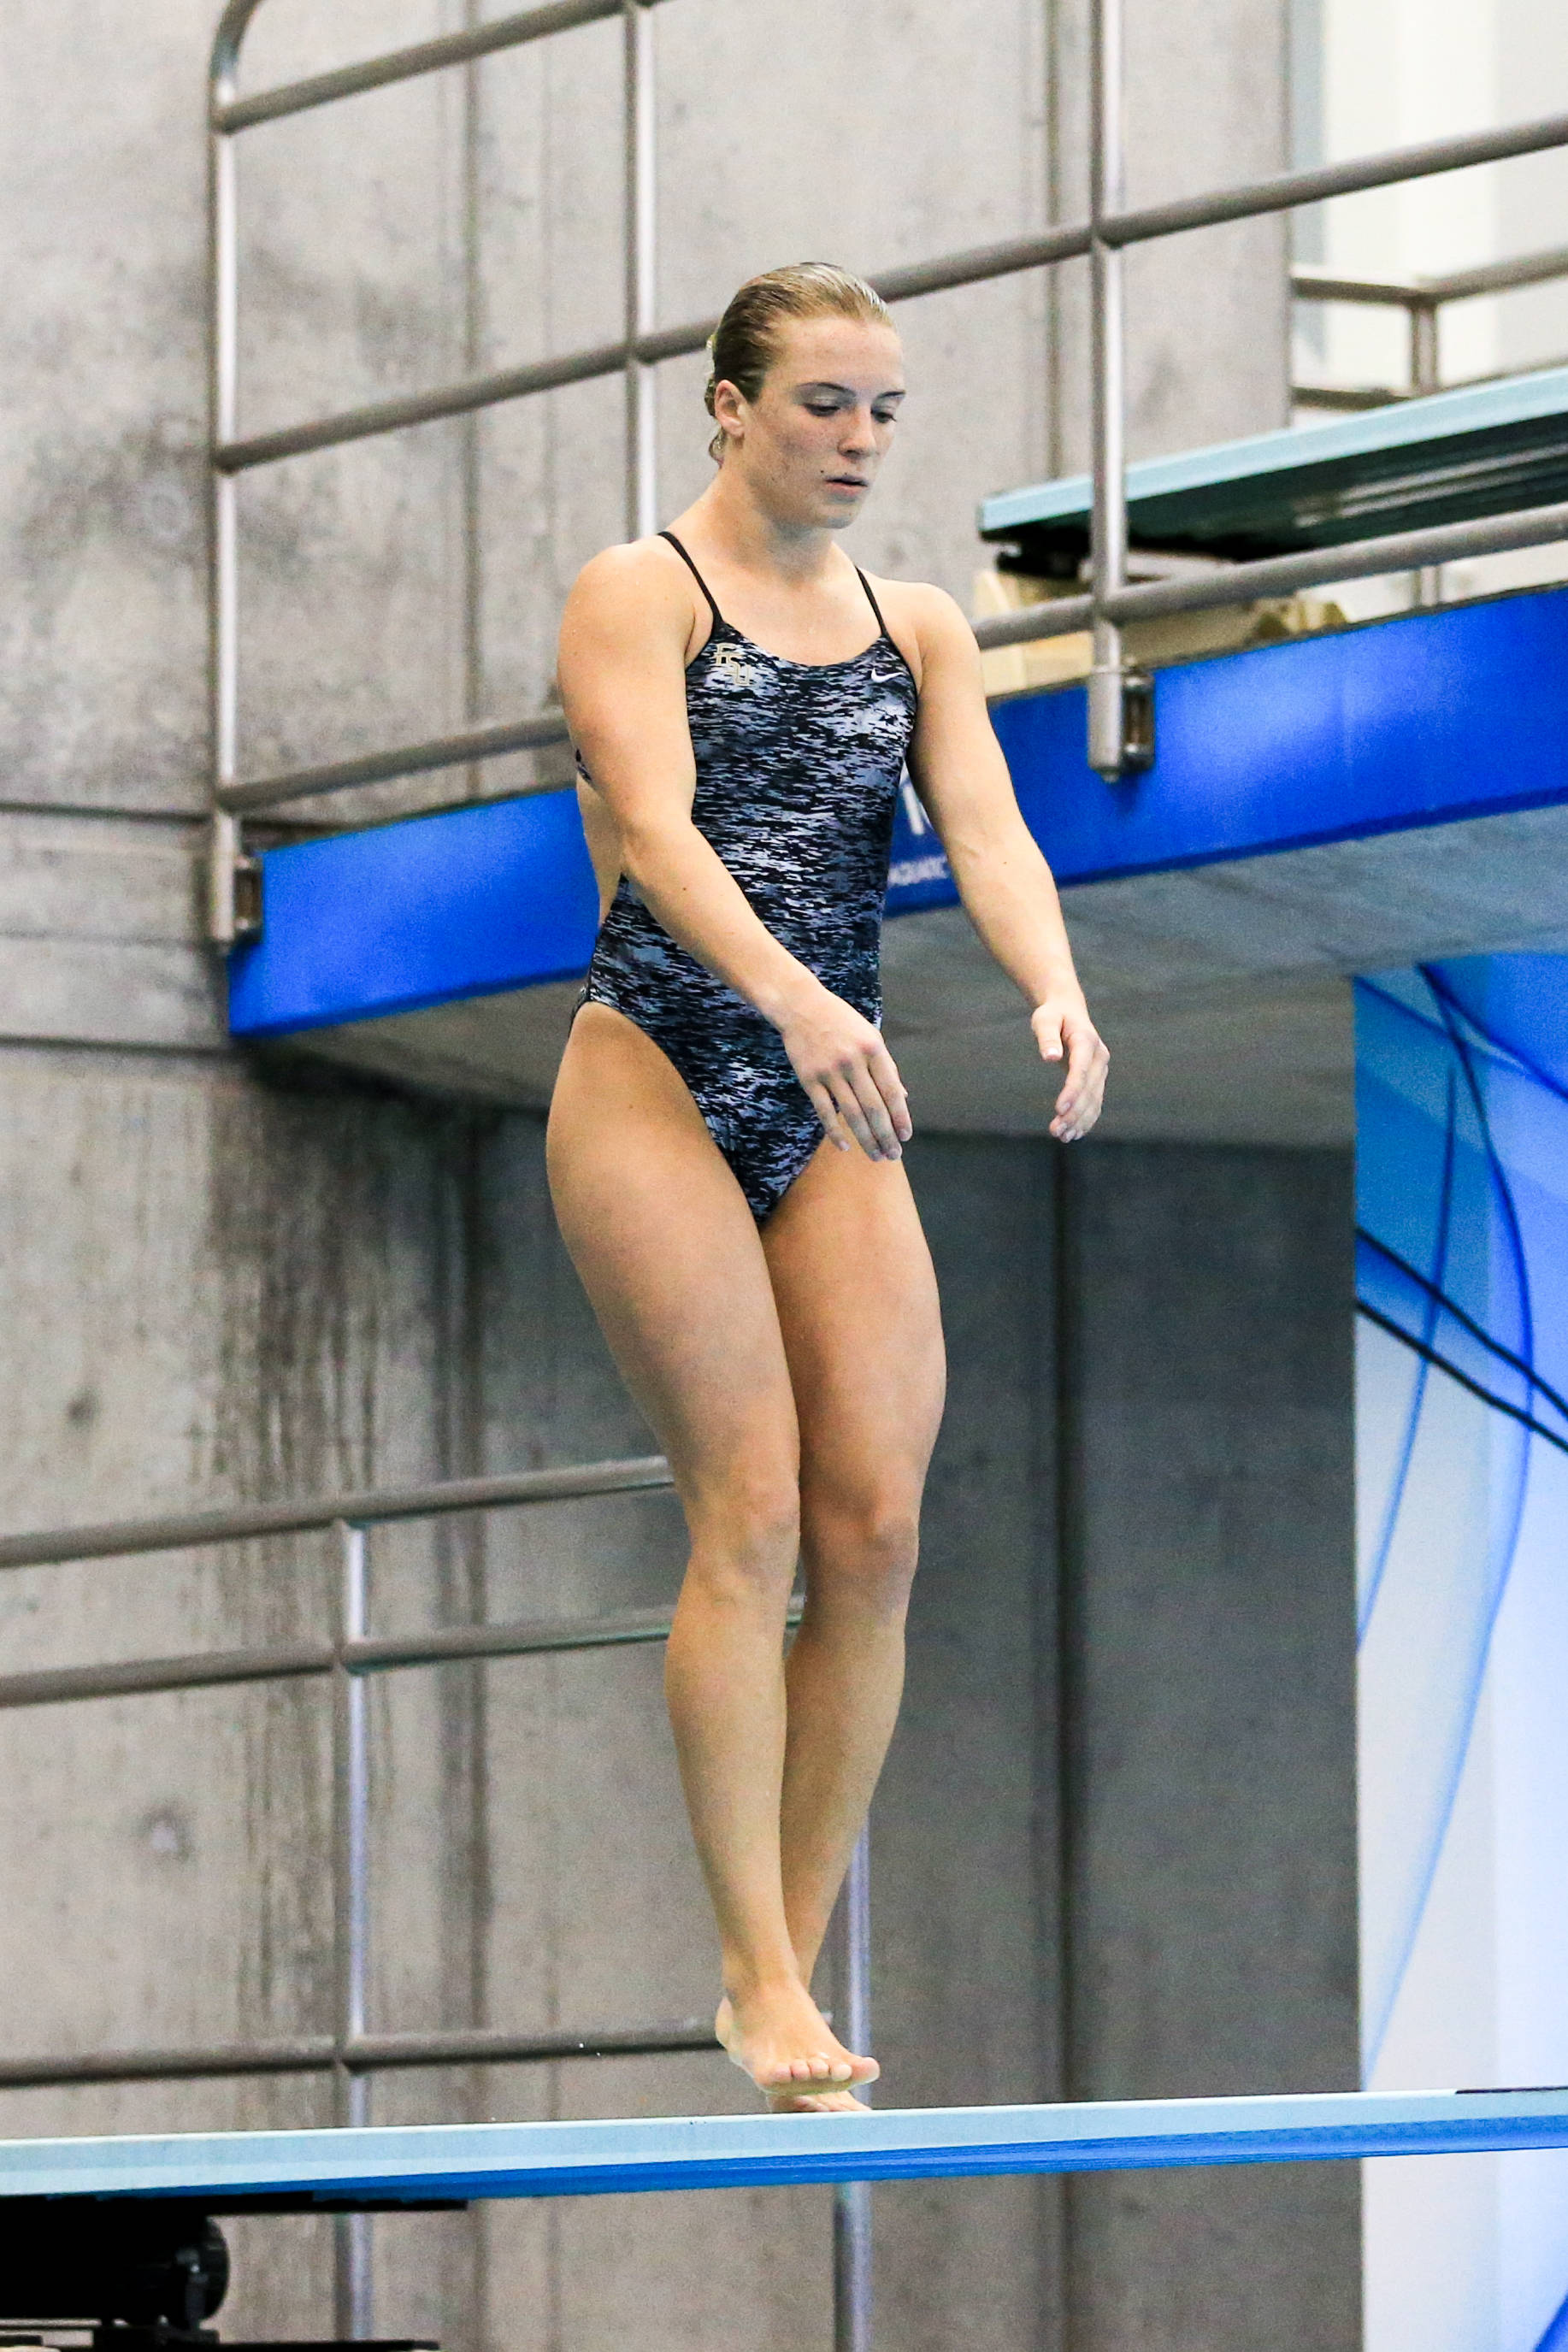 Katrina Young on approach in the 1-meter final.